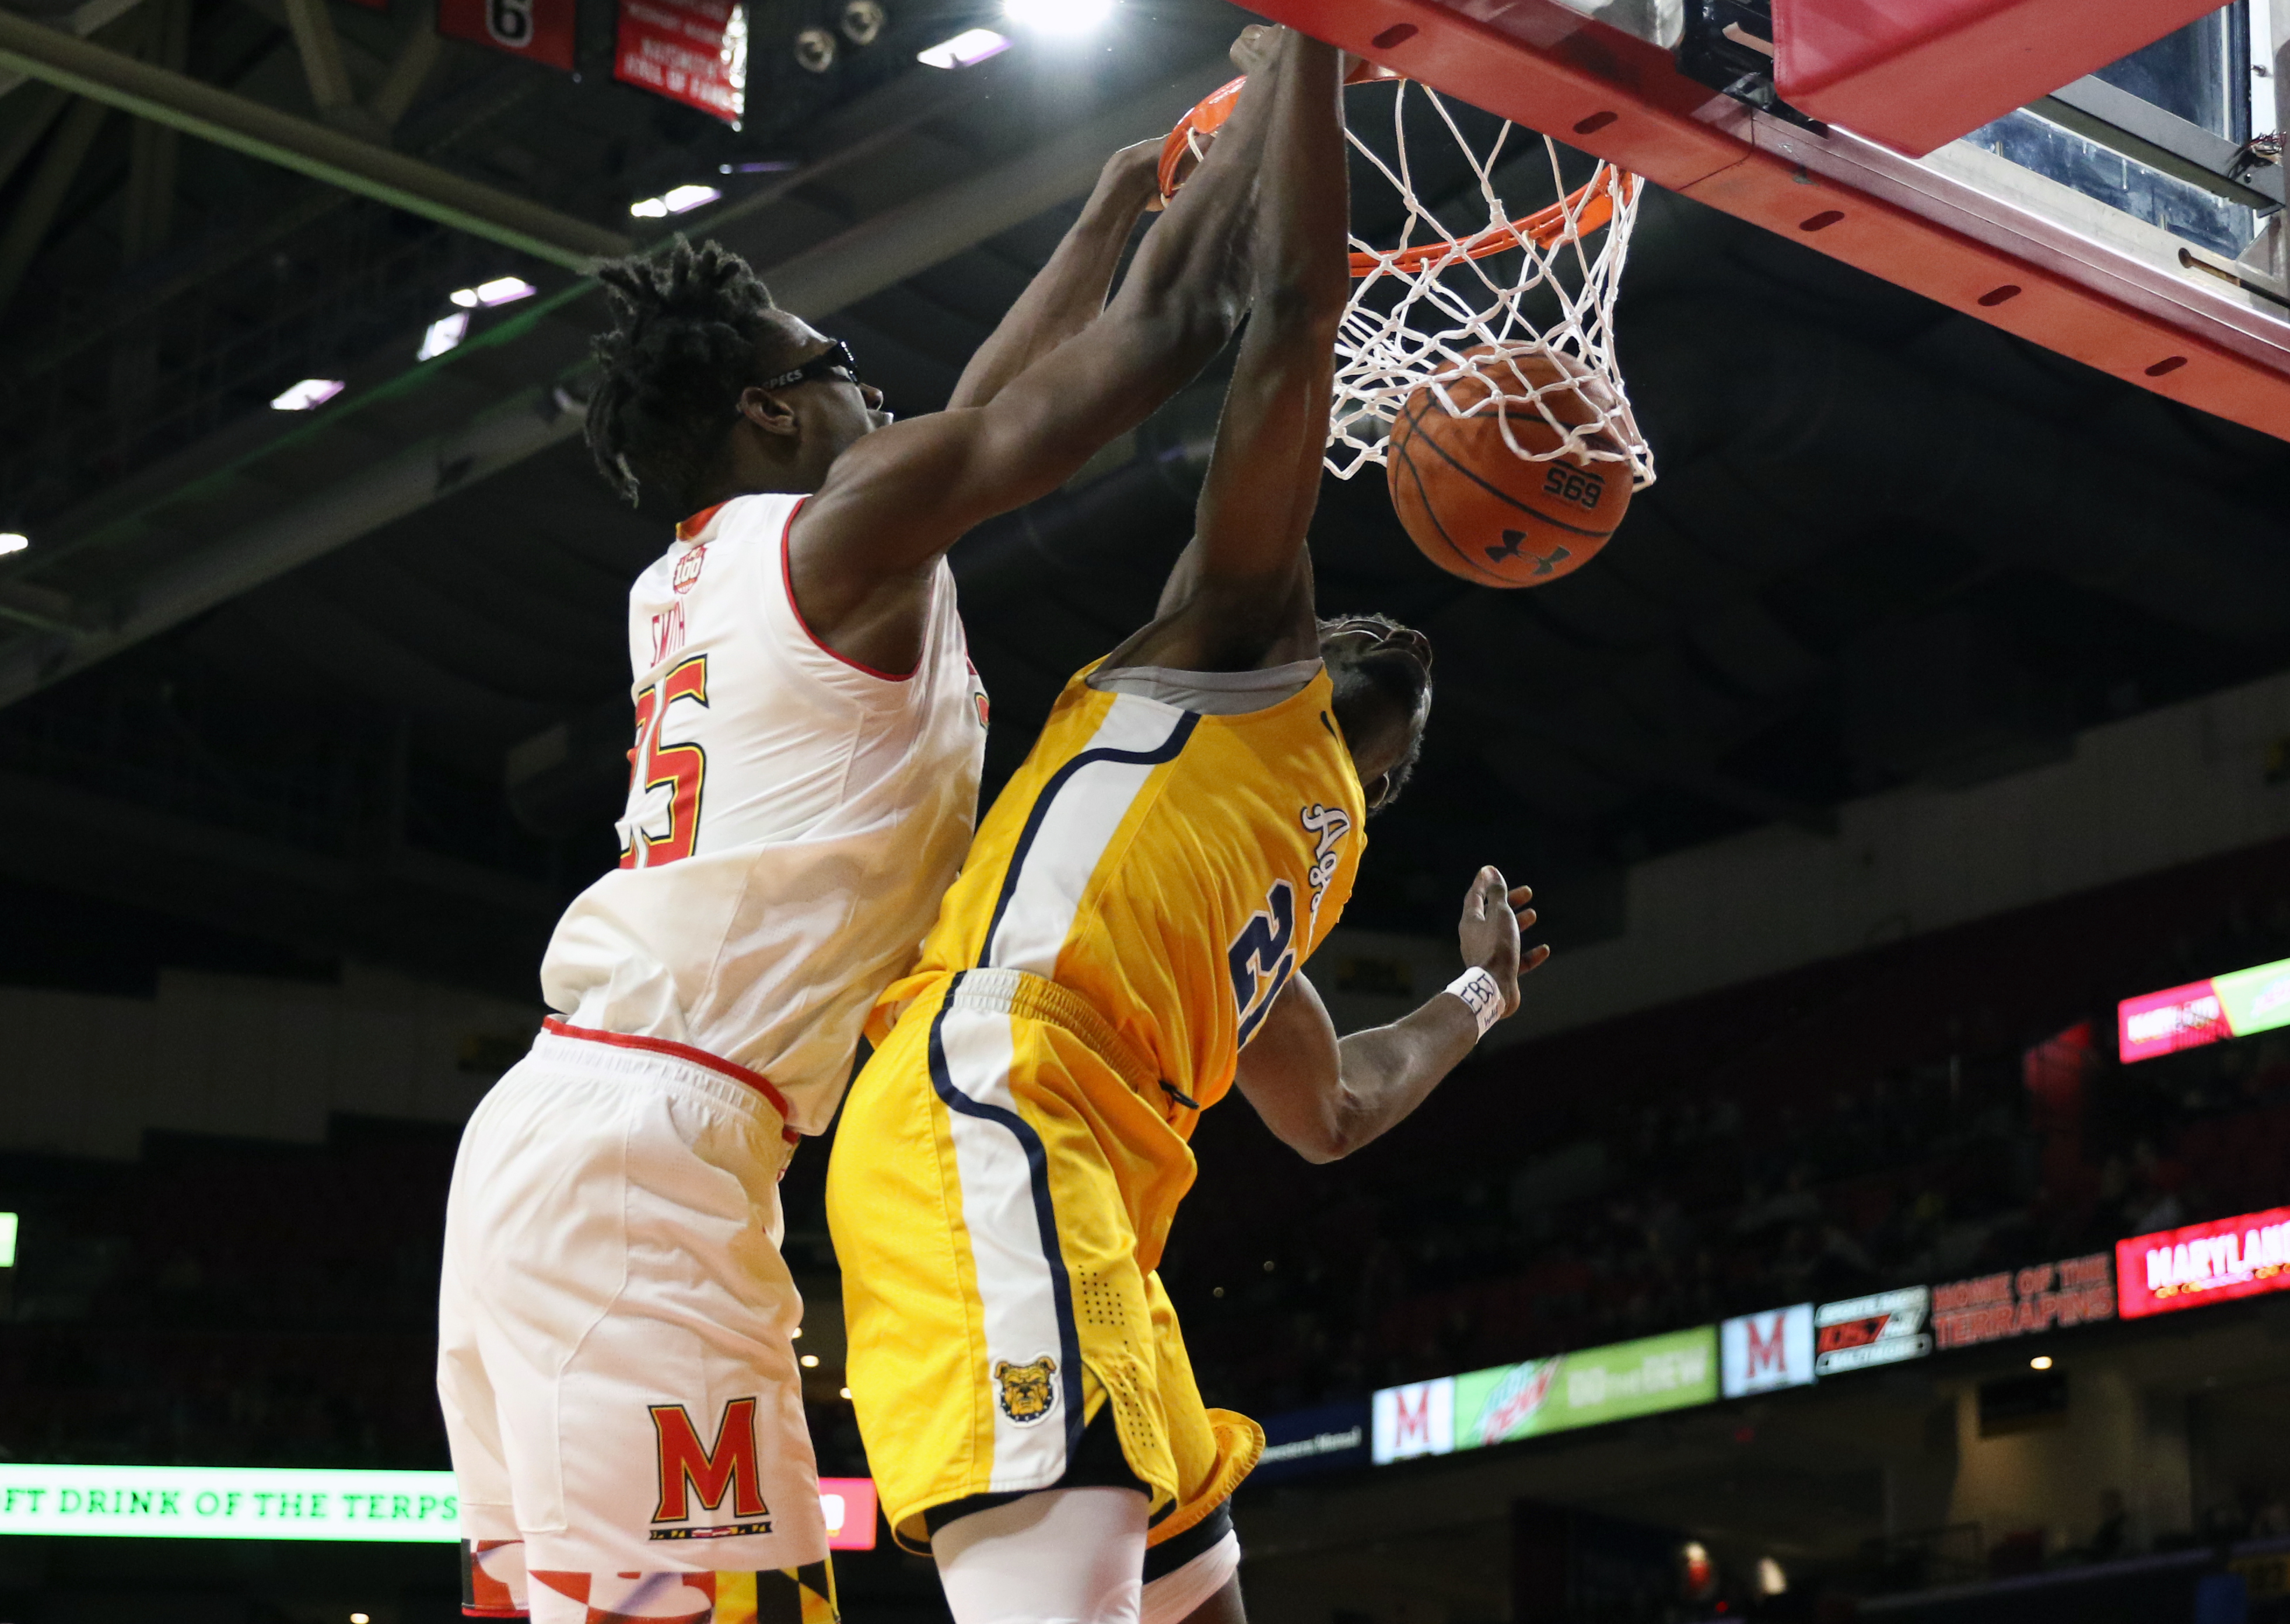 MARYLAND BASKETBALL JALEN SMITH vs. North Carolina A&T